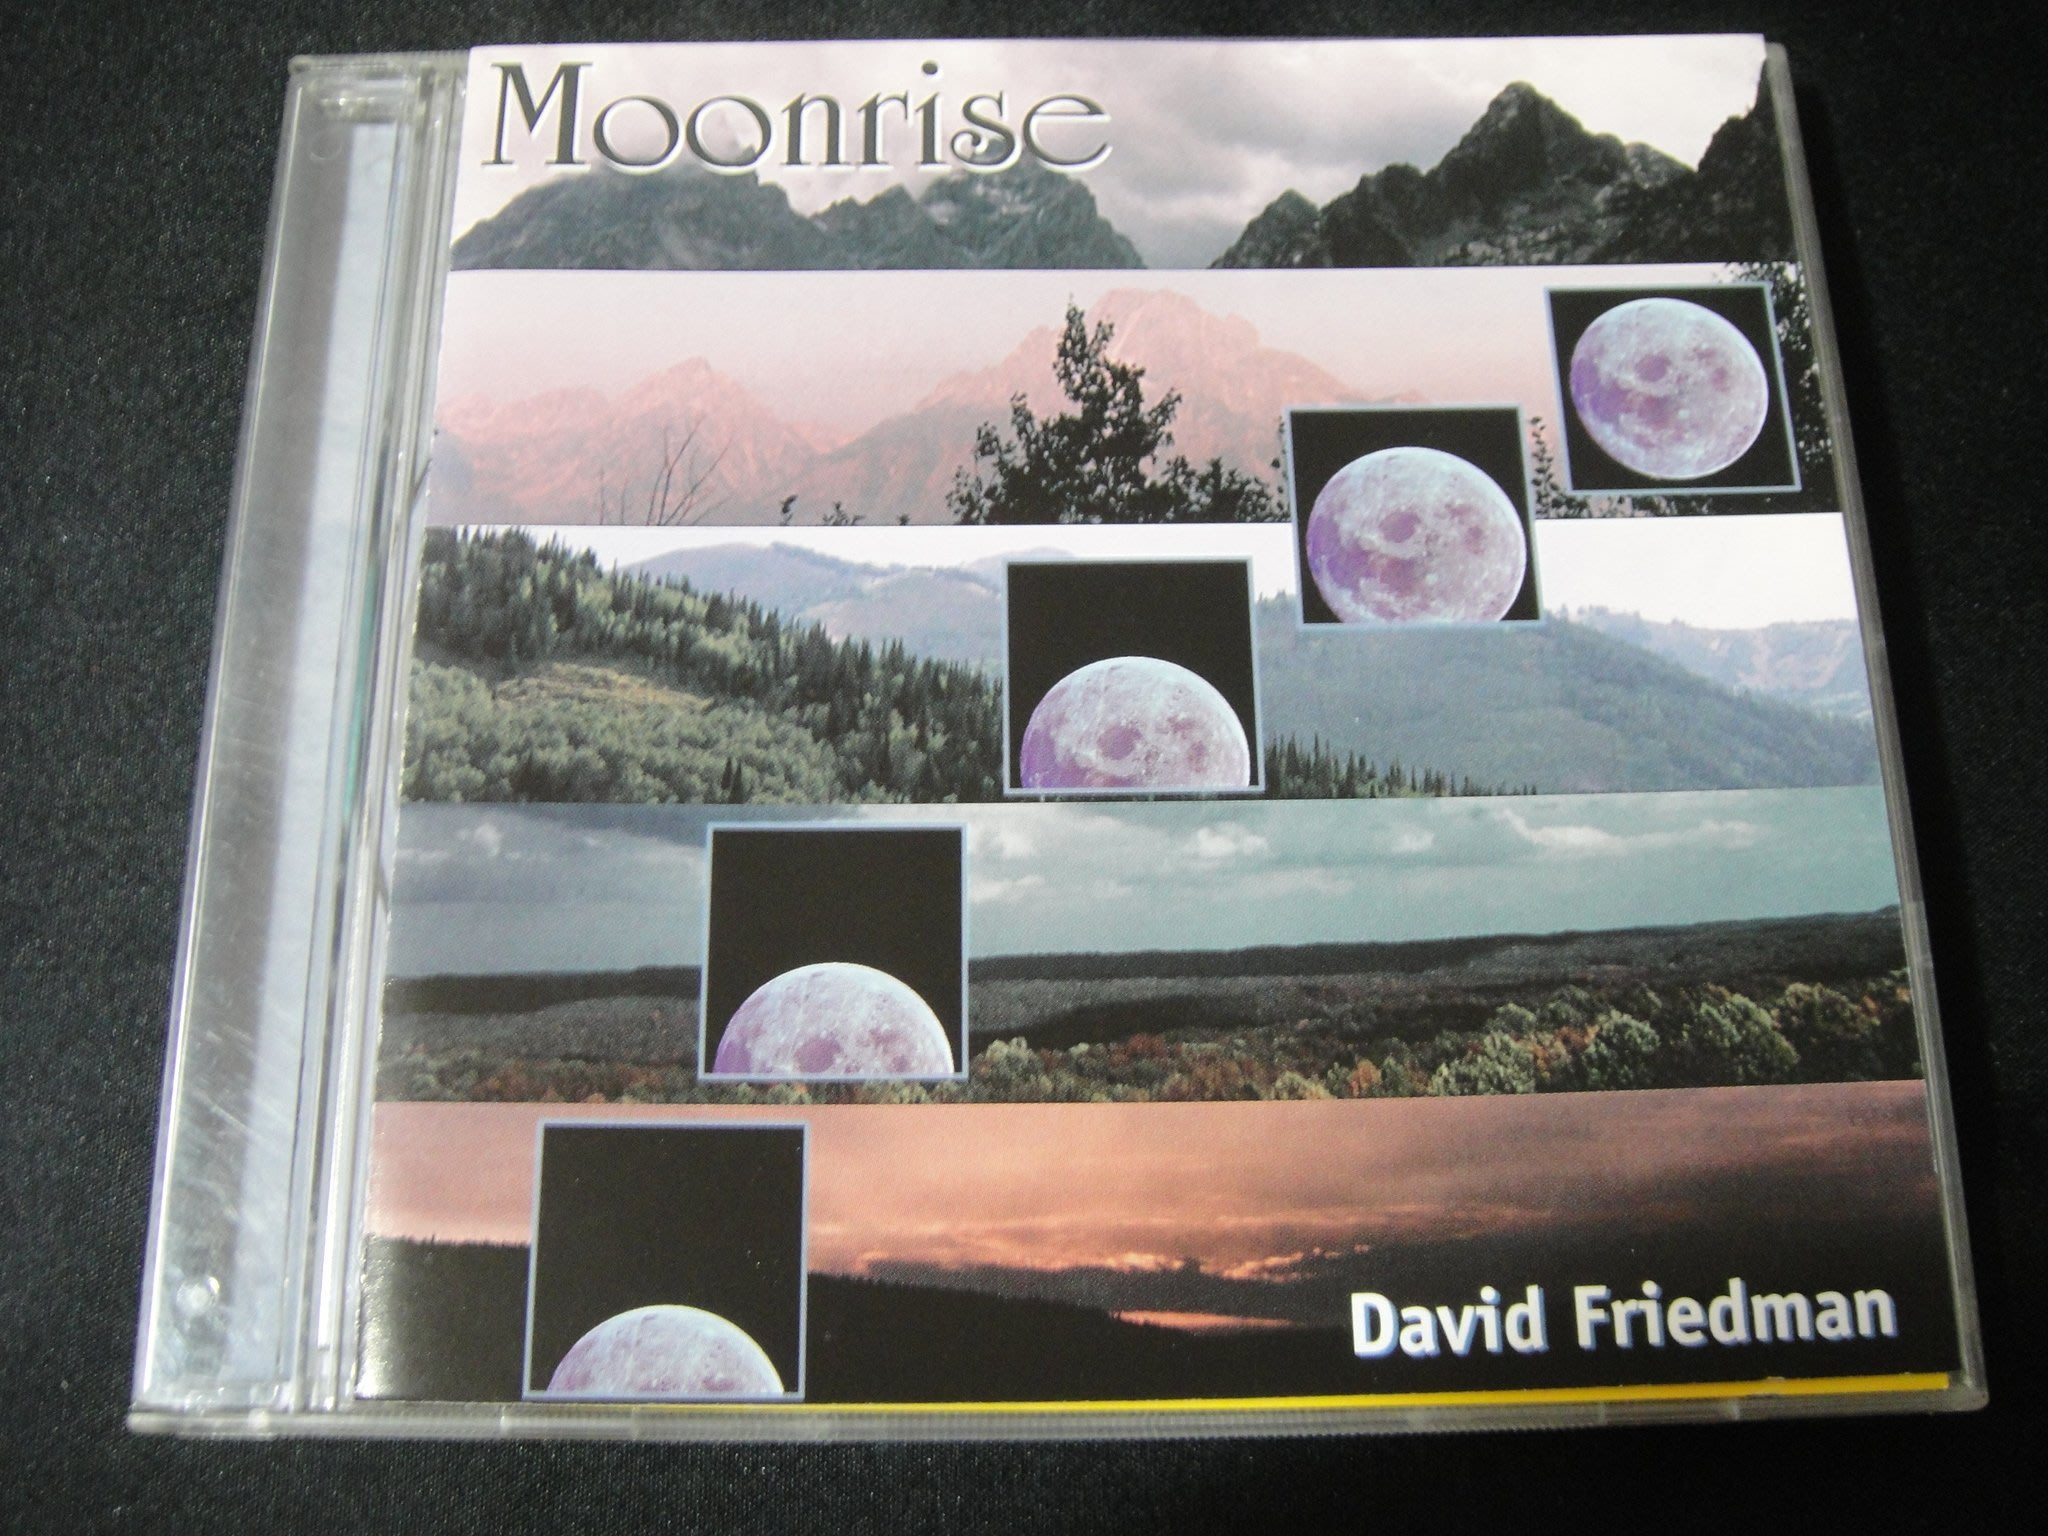 【198樂坊】David Friedman - Moonrise(The Sprinkler Dance...)BV